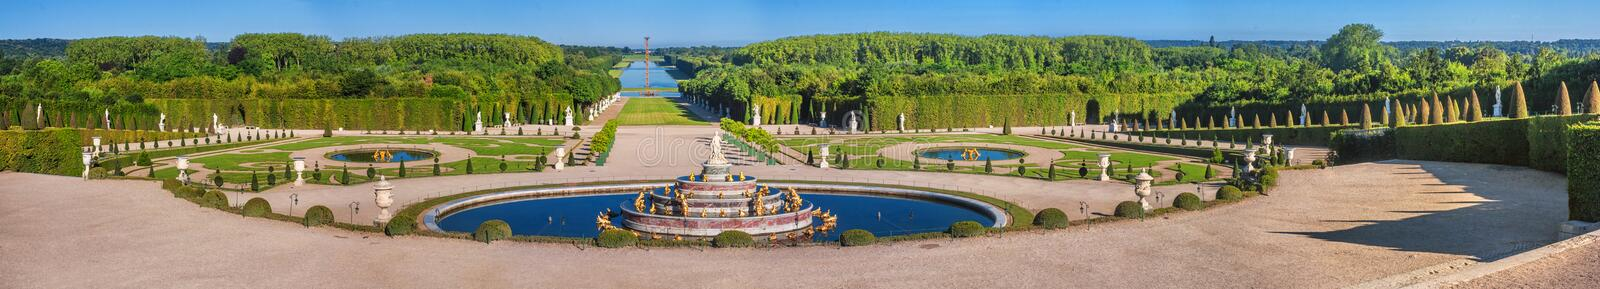 Panoramic view of the Versailles Park - the Latona Basin with the Grand Canal in the background. Under the summer sun, Versailles, France stock photos